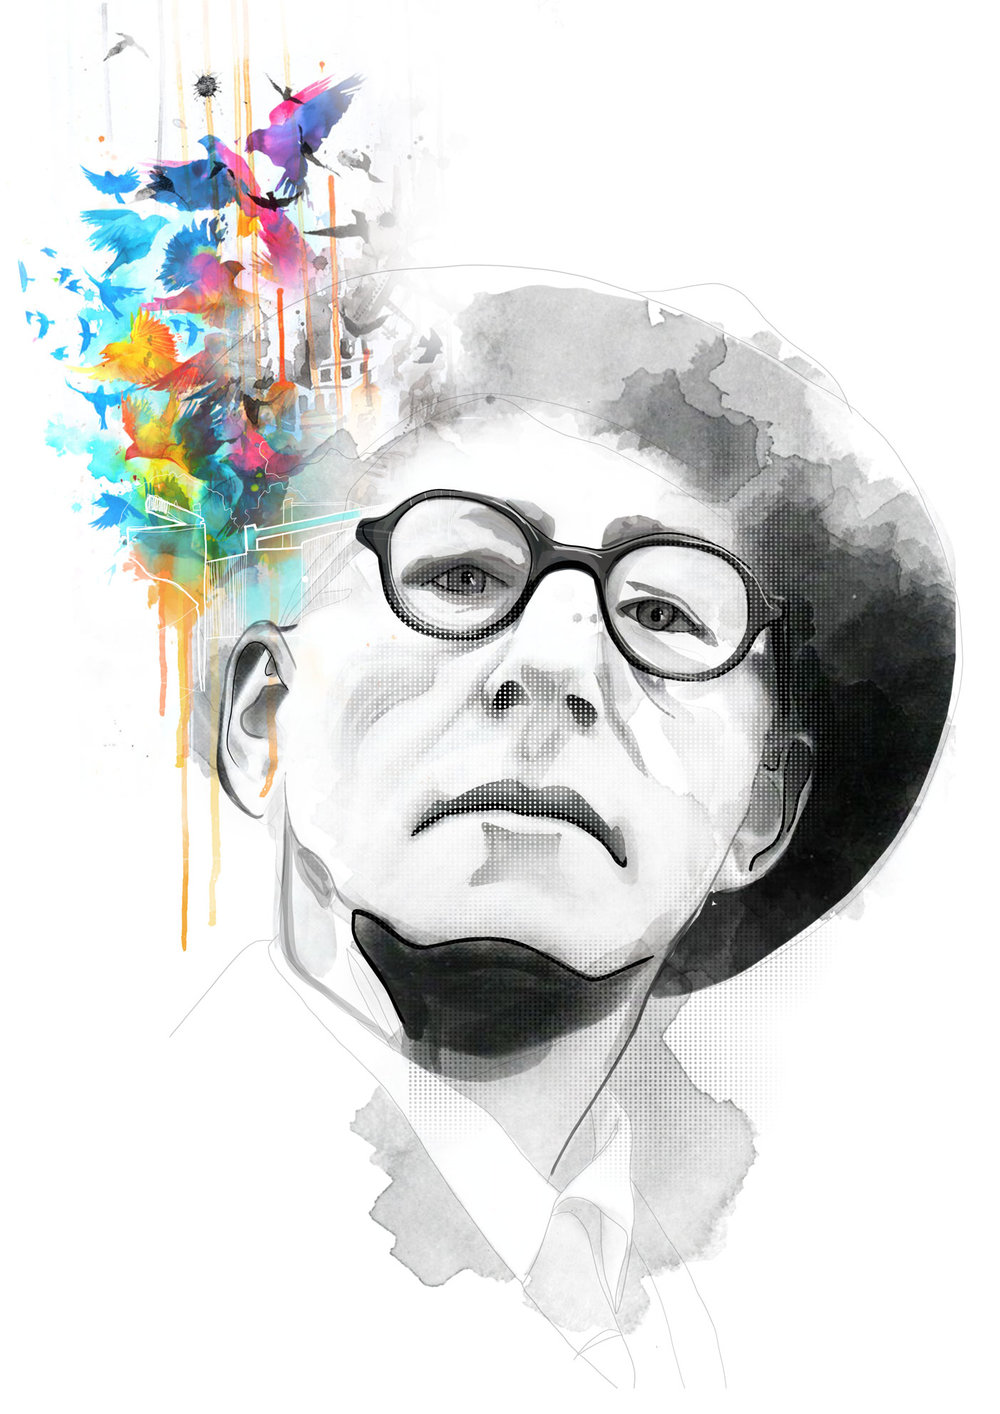 Reddin-designs-Patrick-Kavanagh-detailed-design-lo-res.jpg